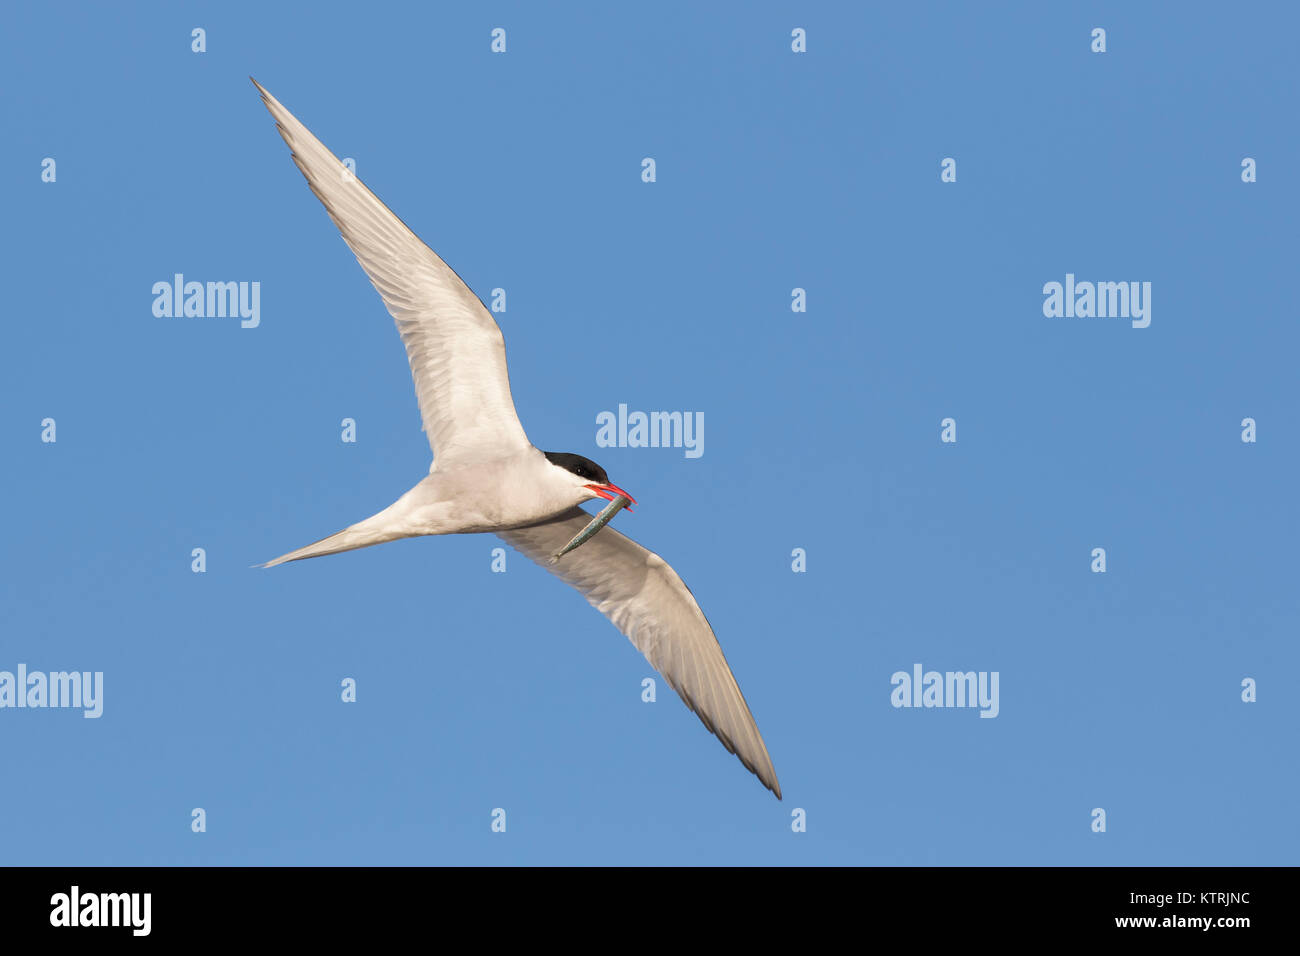 Arctic tern (Sterna paradisaea) with sand eel / sandeel in beak flying against blue sky - Stock Image